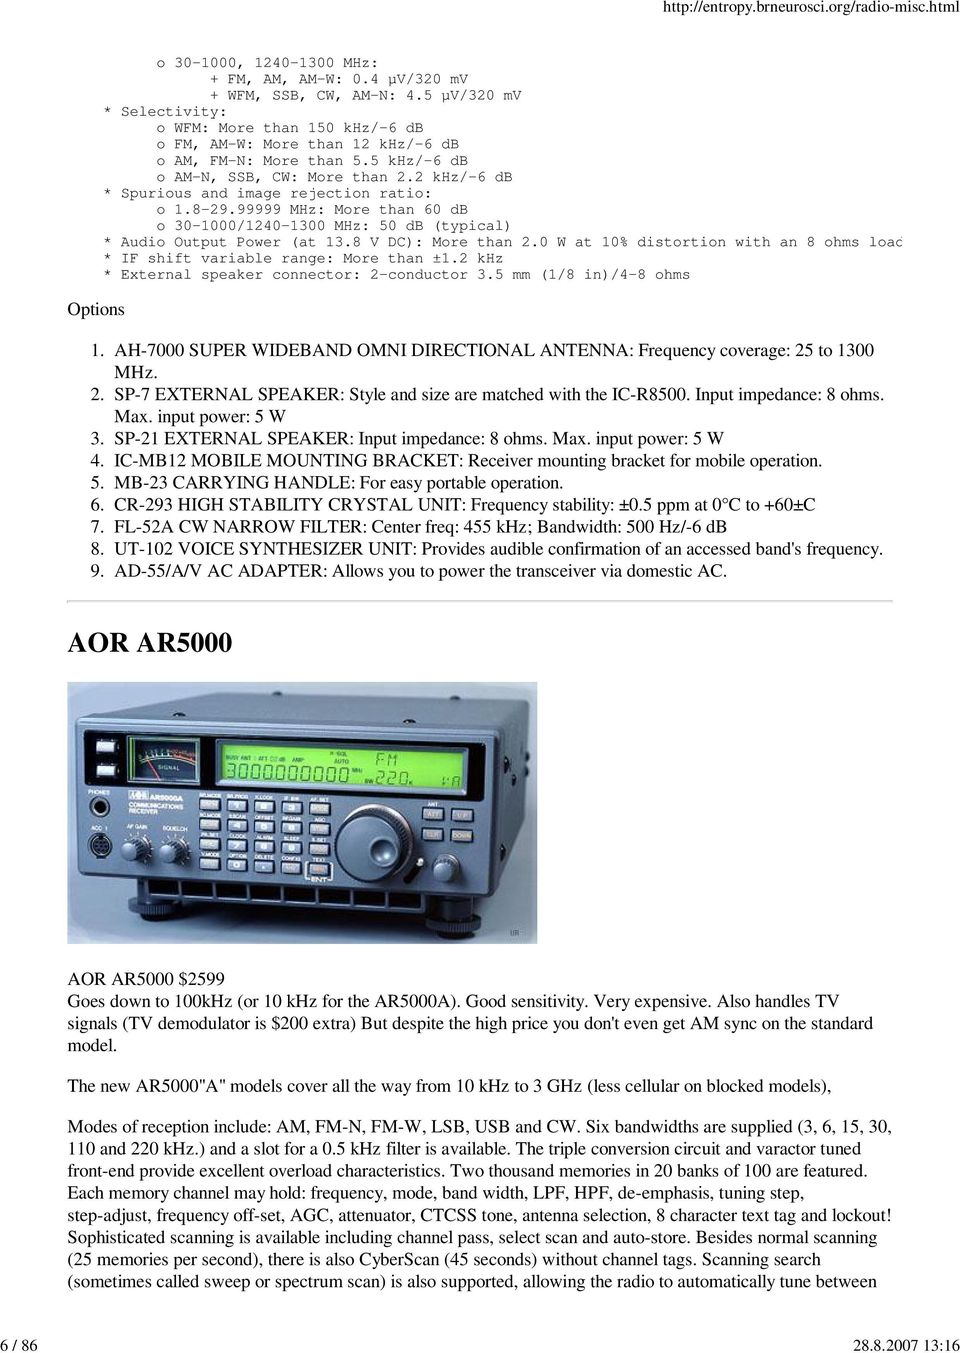 Specifications of shortwave radios from various